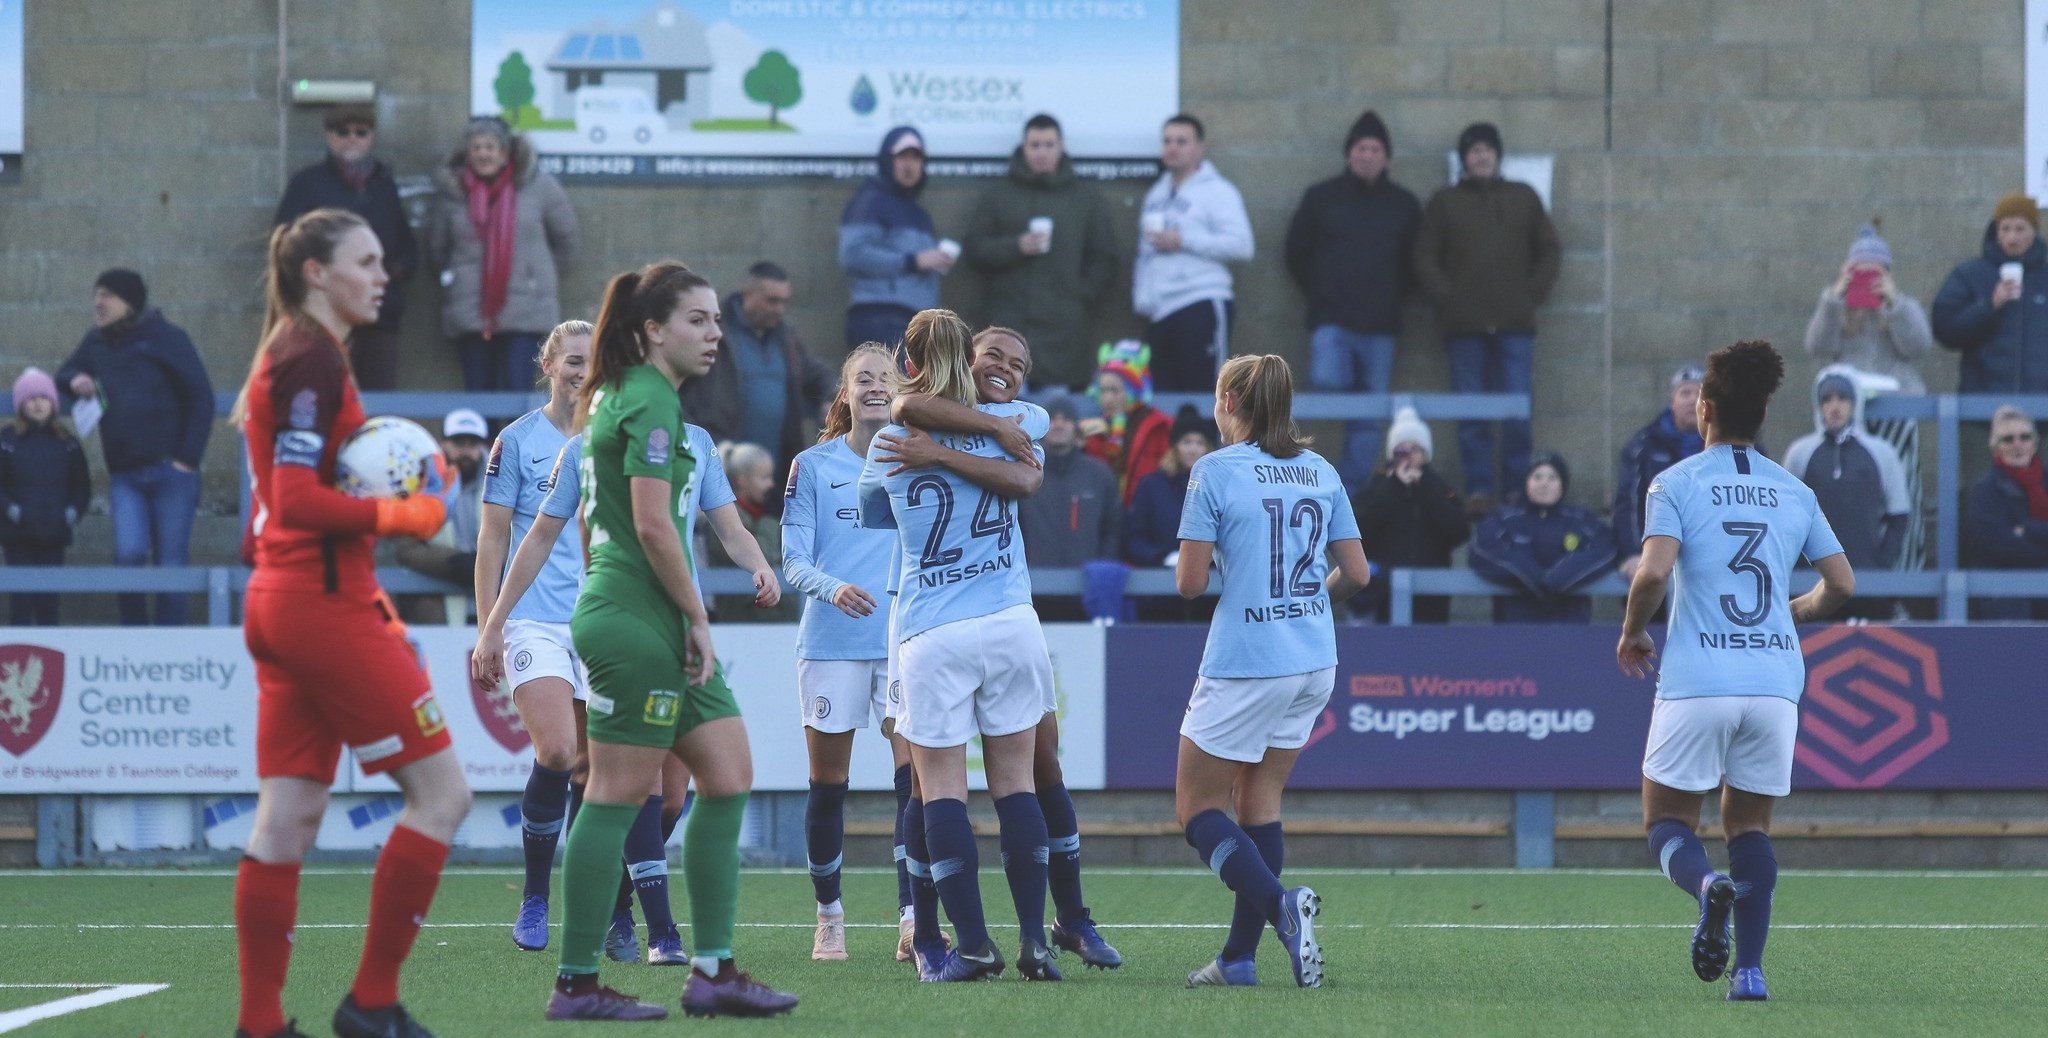 Man City Women celebrate Nikita Parris' goal.